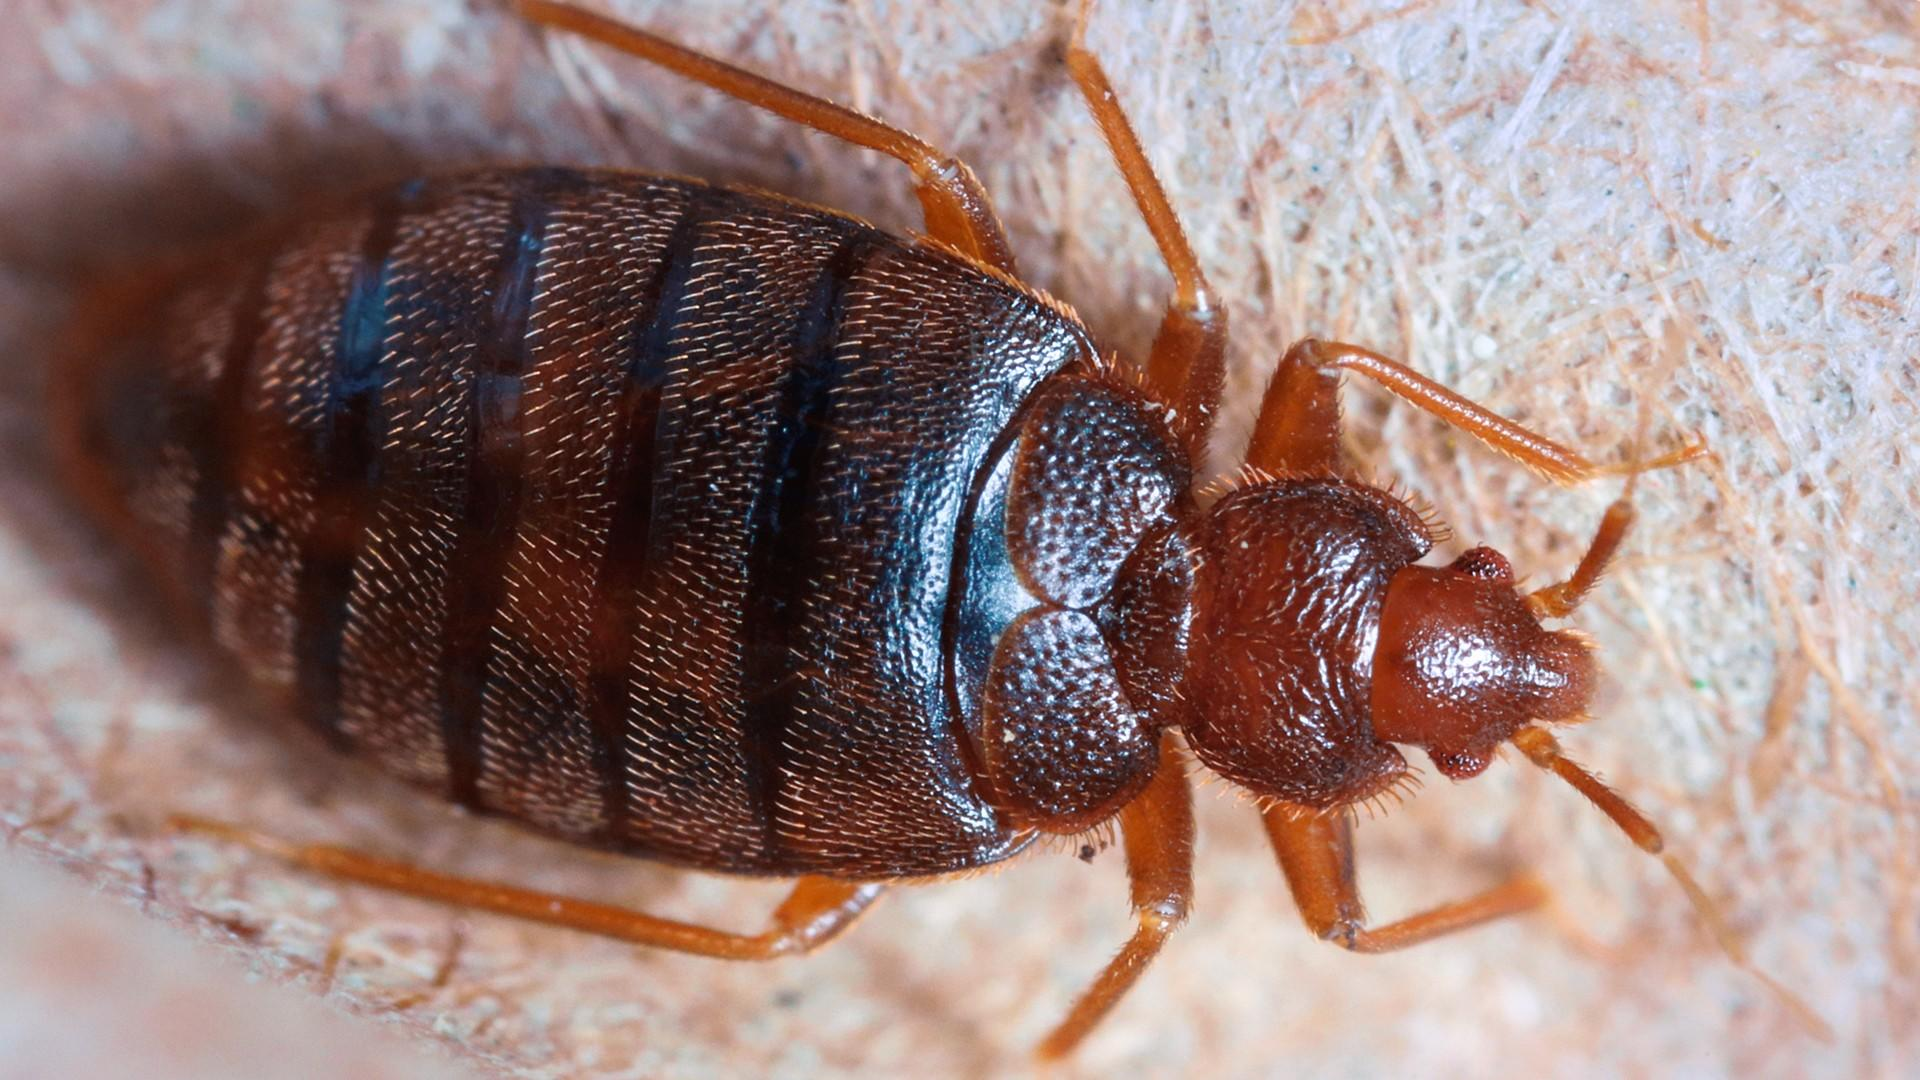 Closeup photo of an adult bed bug